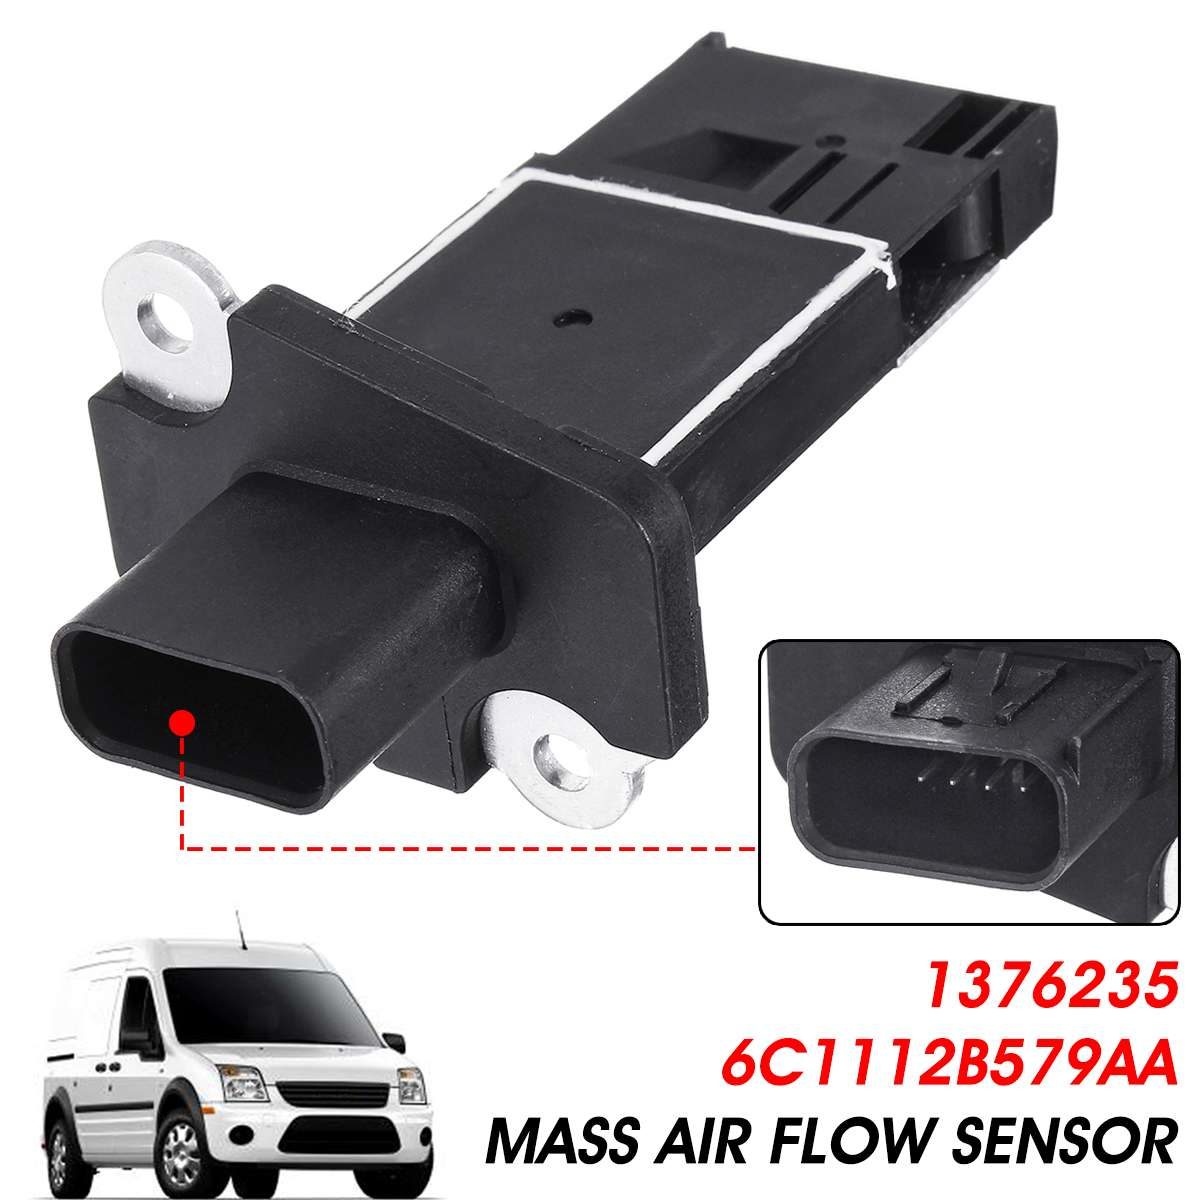 Mass Air Flow Sensor Meter For Ford Transit MK7 Mondeo S-MAX Galaxy for PEUGEOT VOLVO 1376235 6C1112B579AAMass Air Flow Sensor Meter For Ford Transit MK7 Mondeo S-MAX Galaxy for PEUGEOT VOLVO 1376235 6C1112B579AA